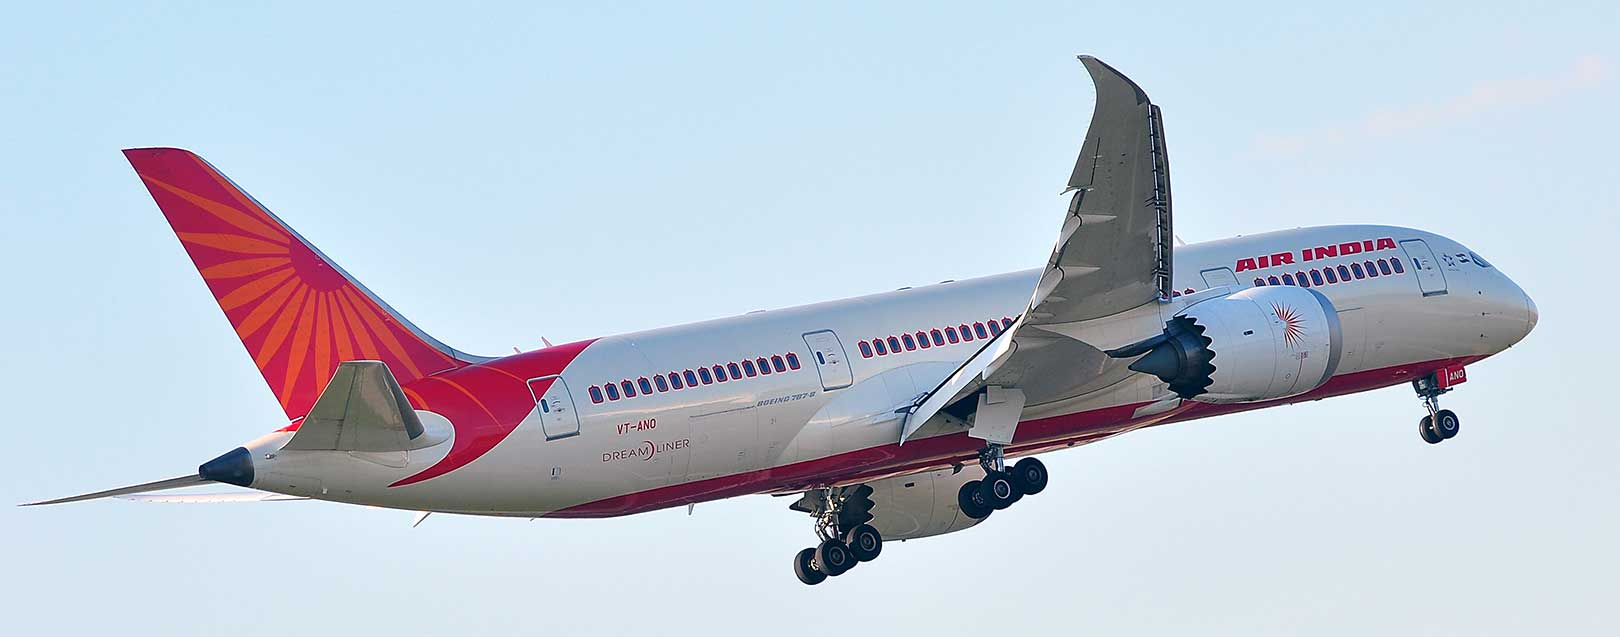 Air India decides to register operational profit in current fiscal: Sinha